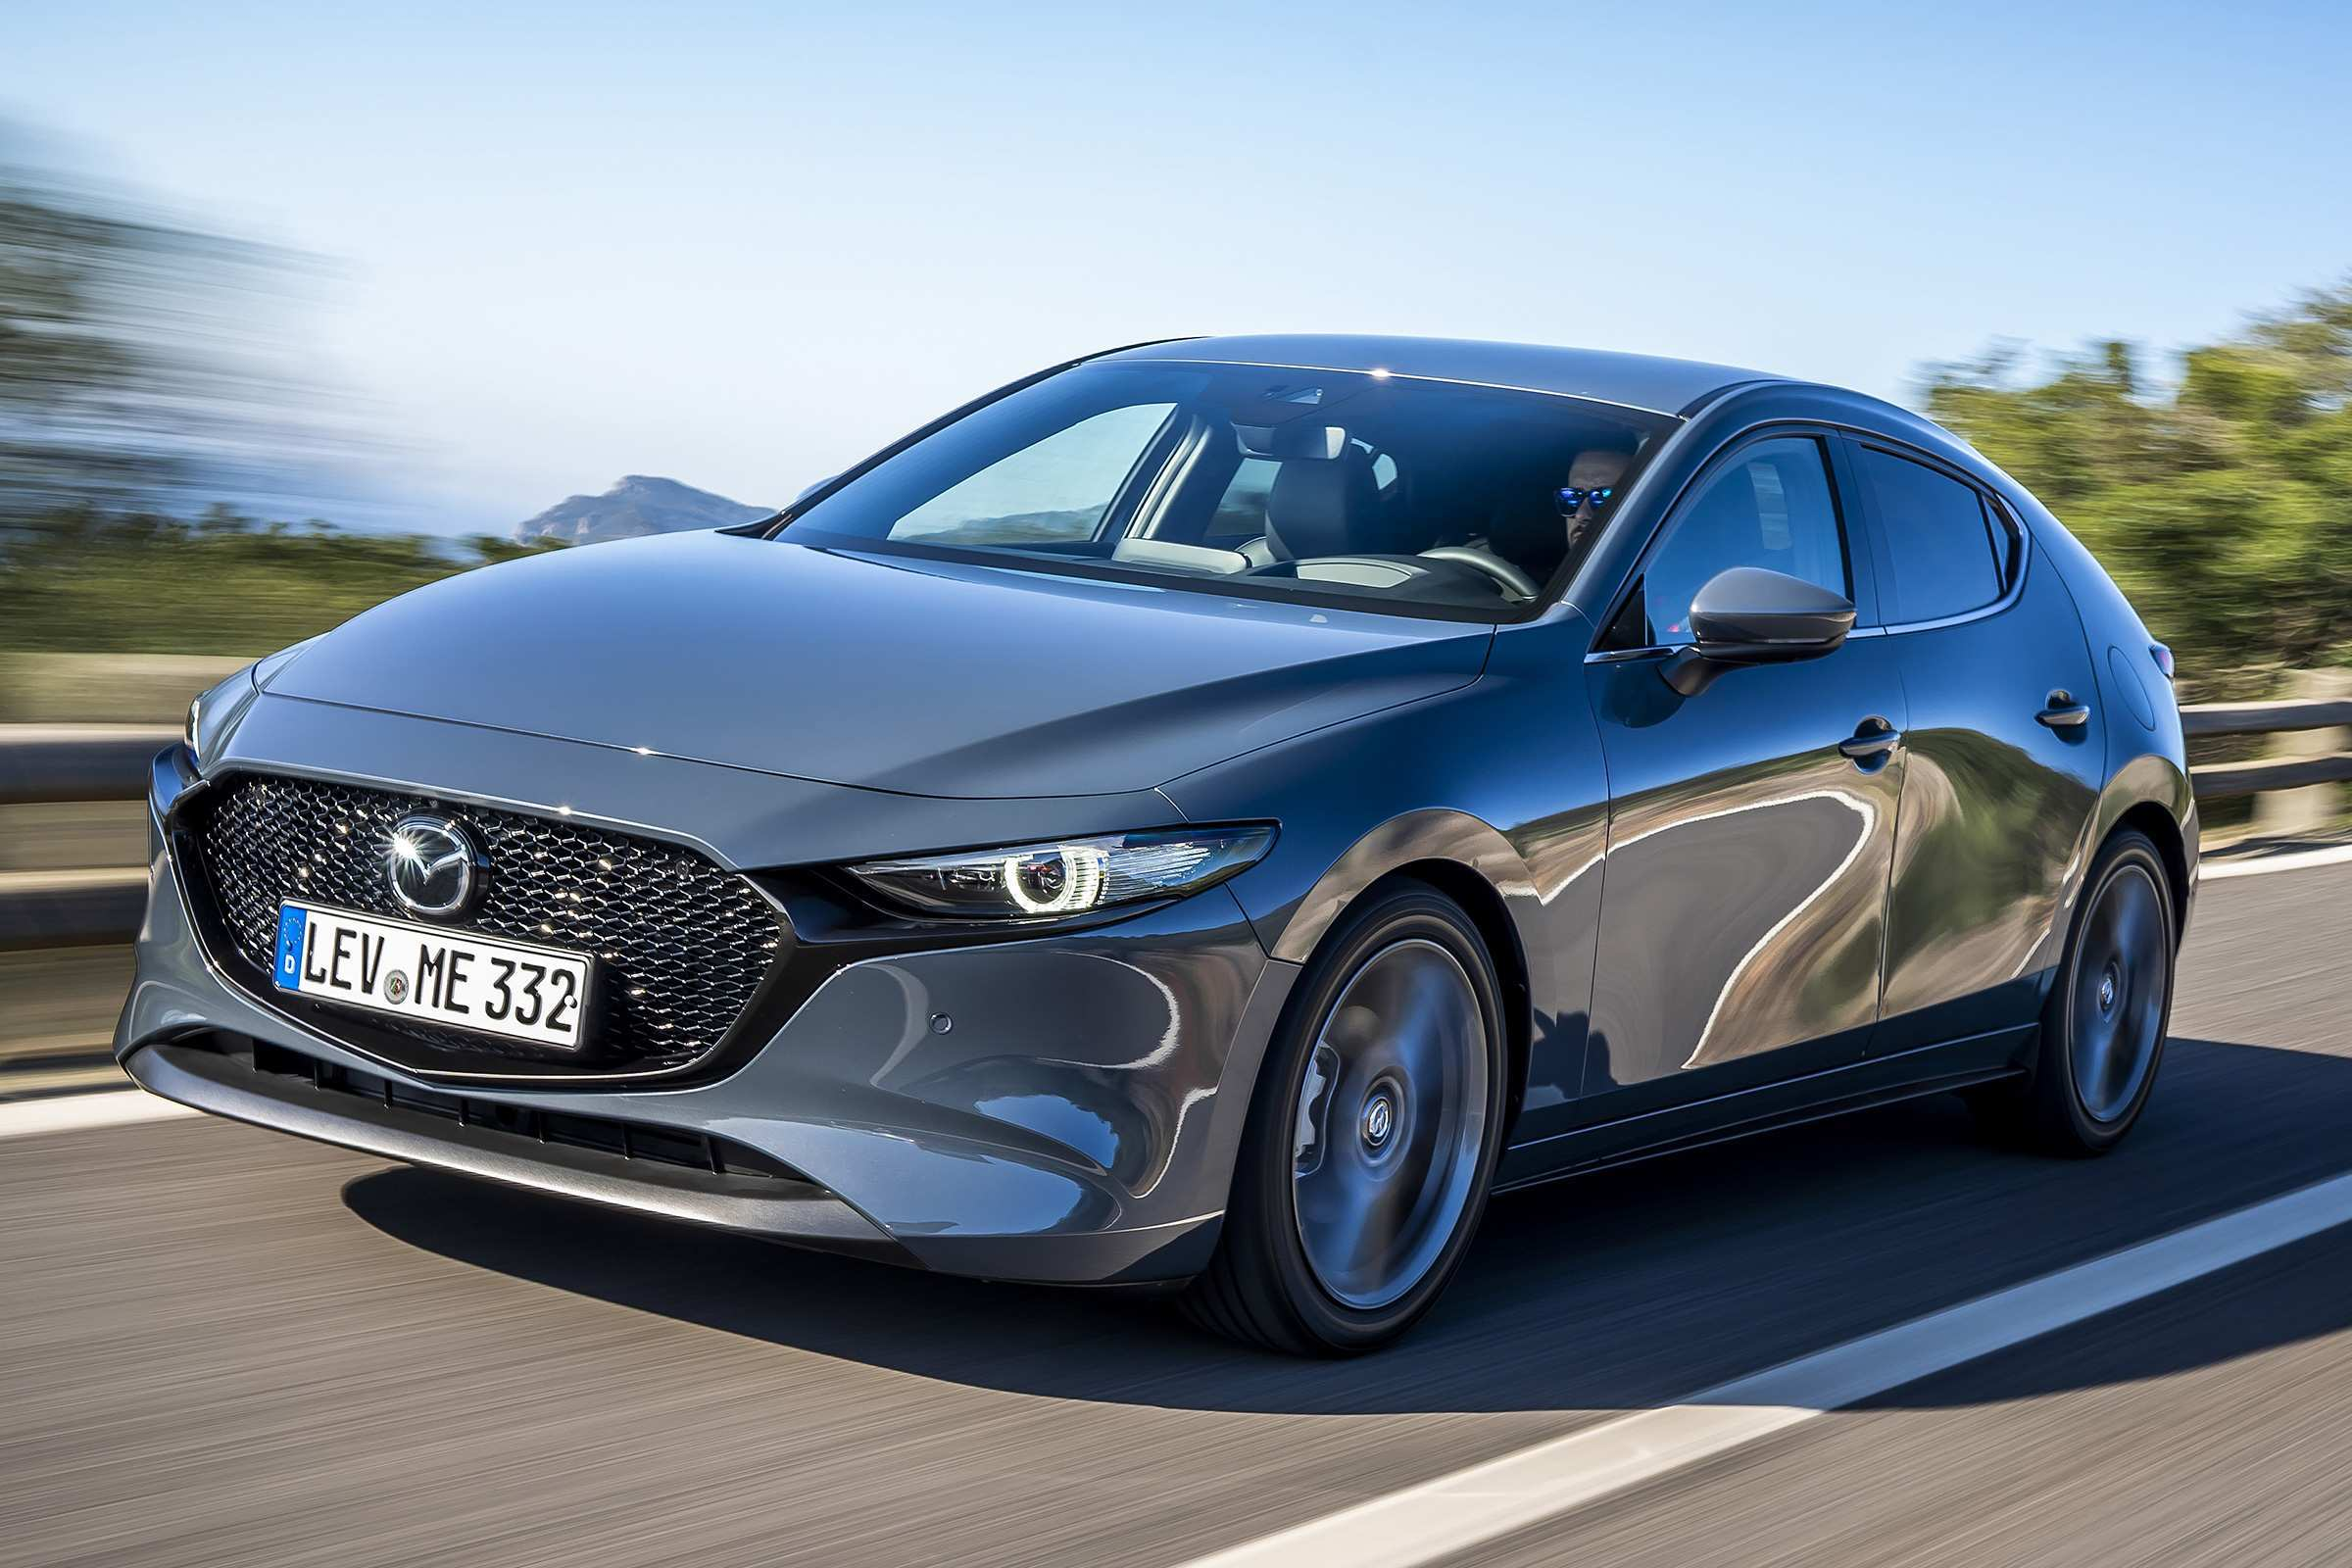 45 The New Mazda 6 2019 Uk Overview Exterior for New Mazda 6 2019 Uk Overview